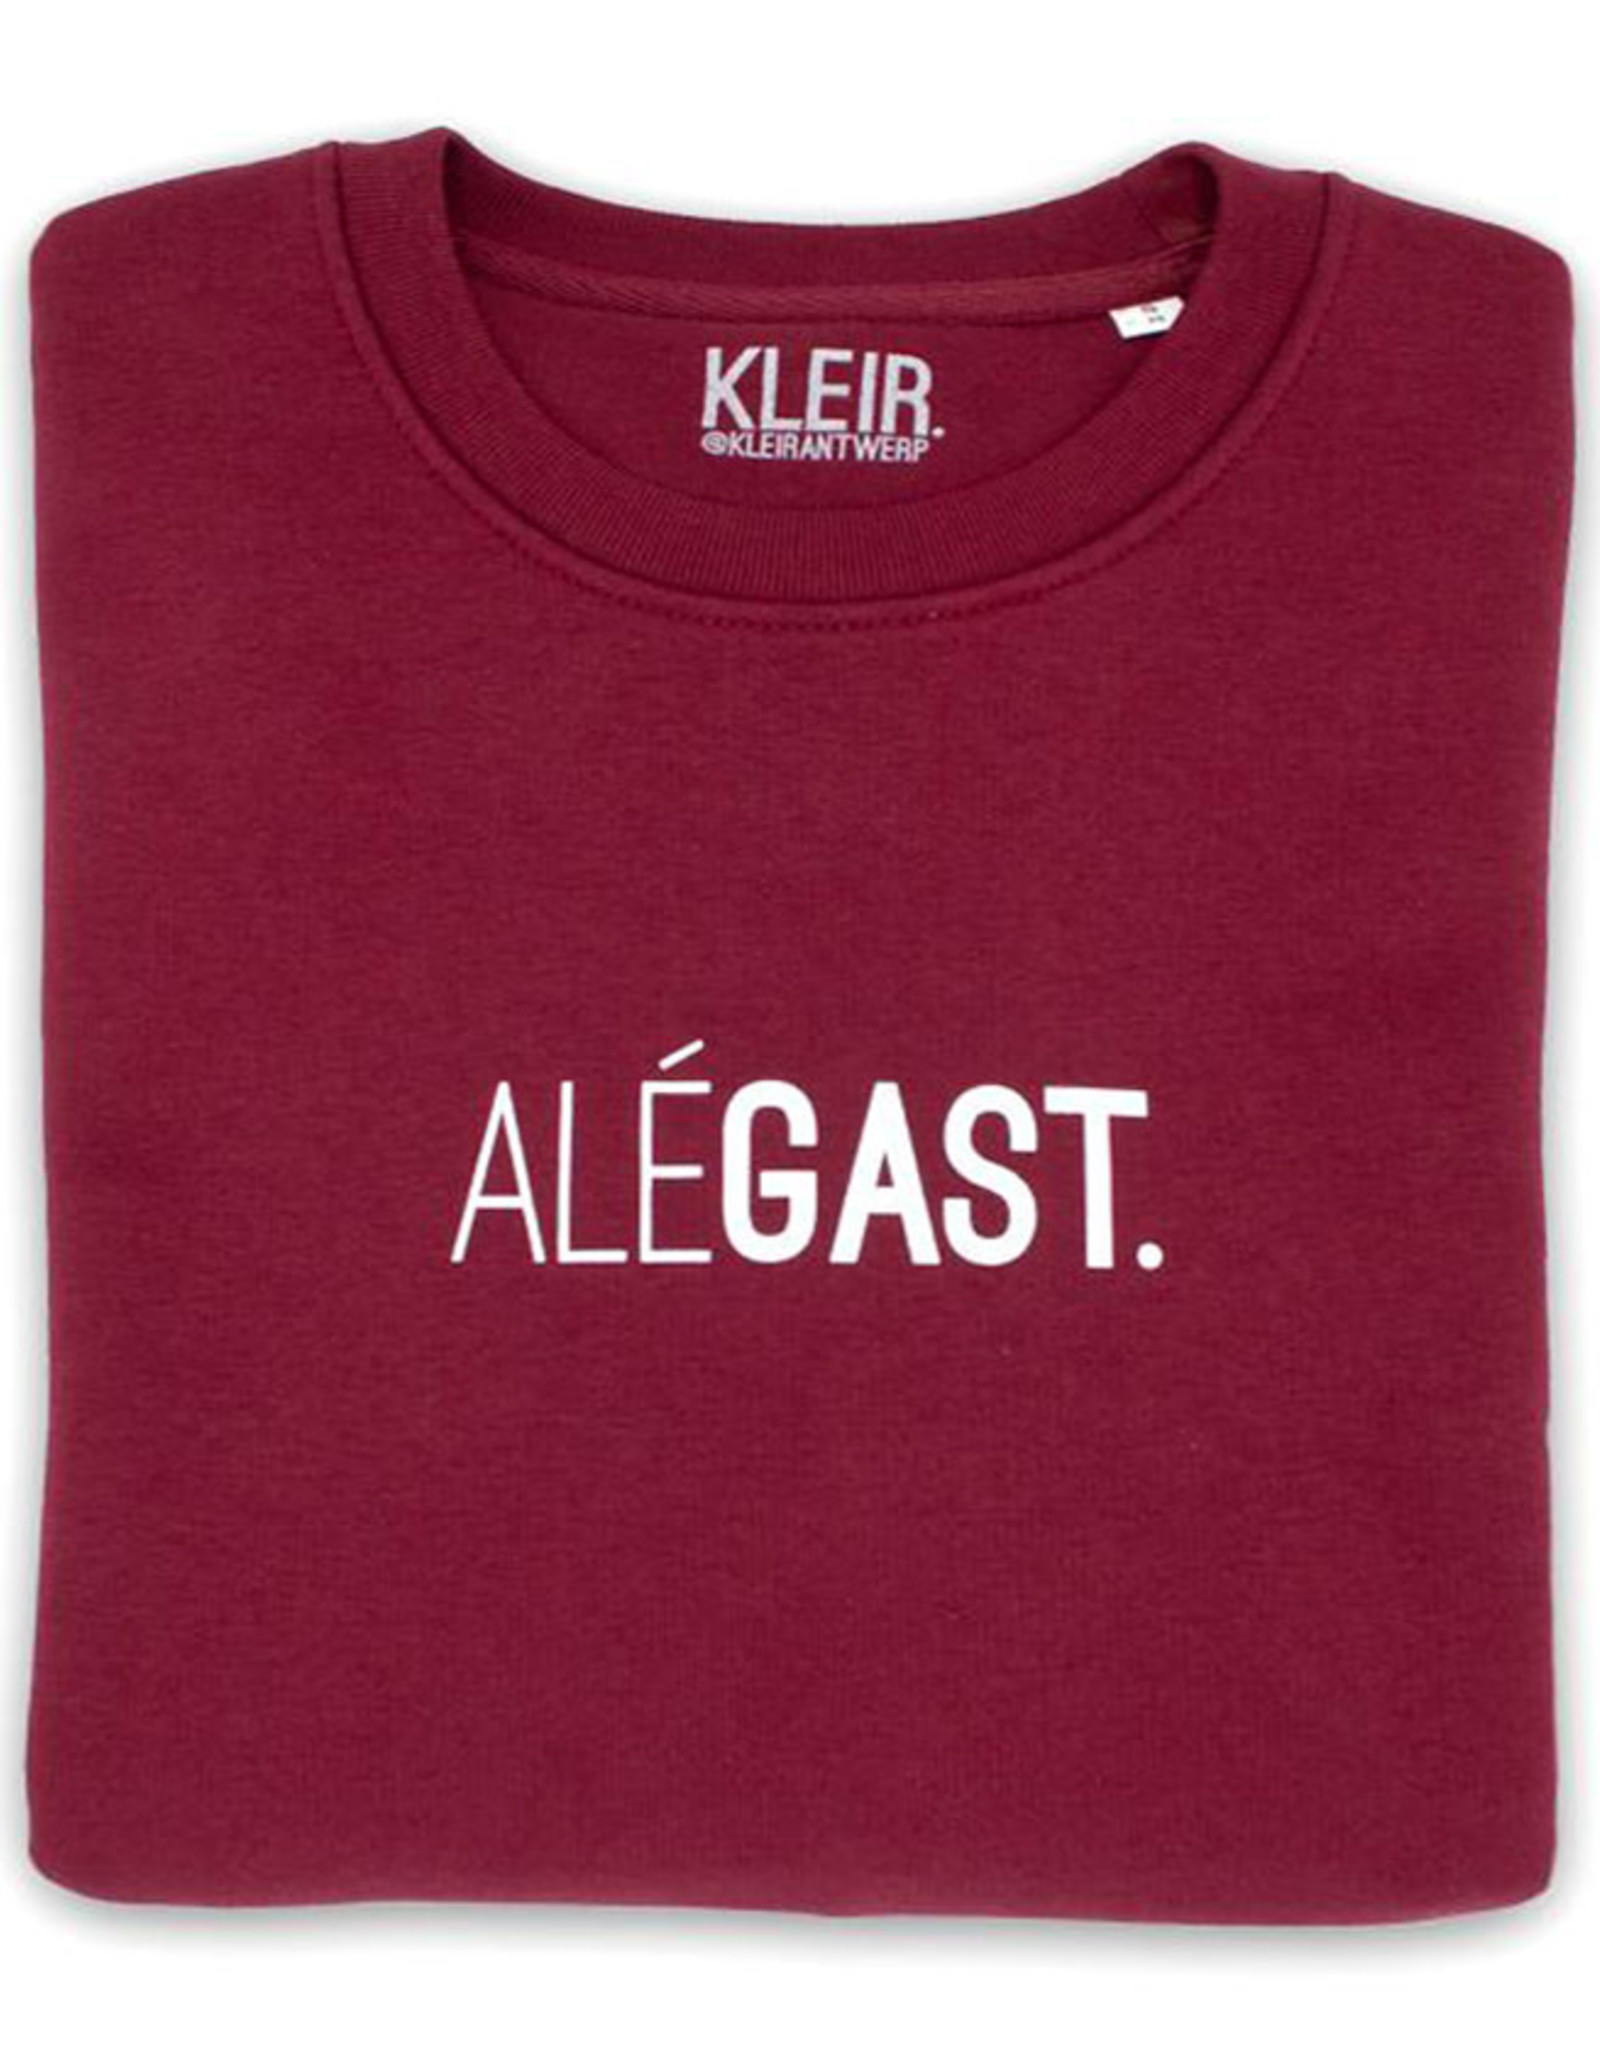 Kleir Sweater Biokatoen ALÉGAST-bordeaux